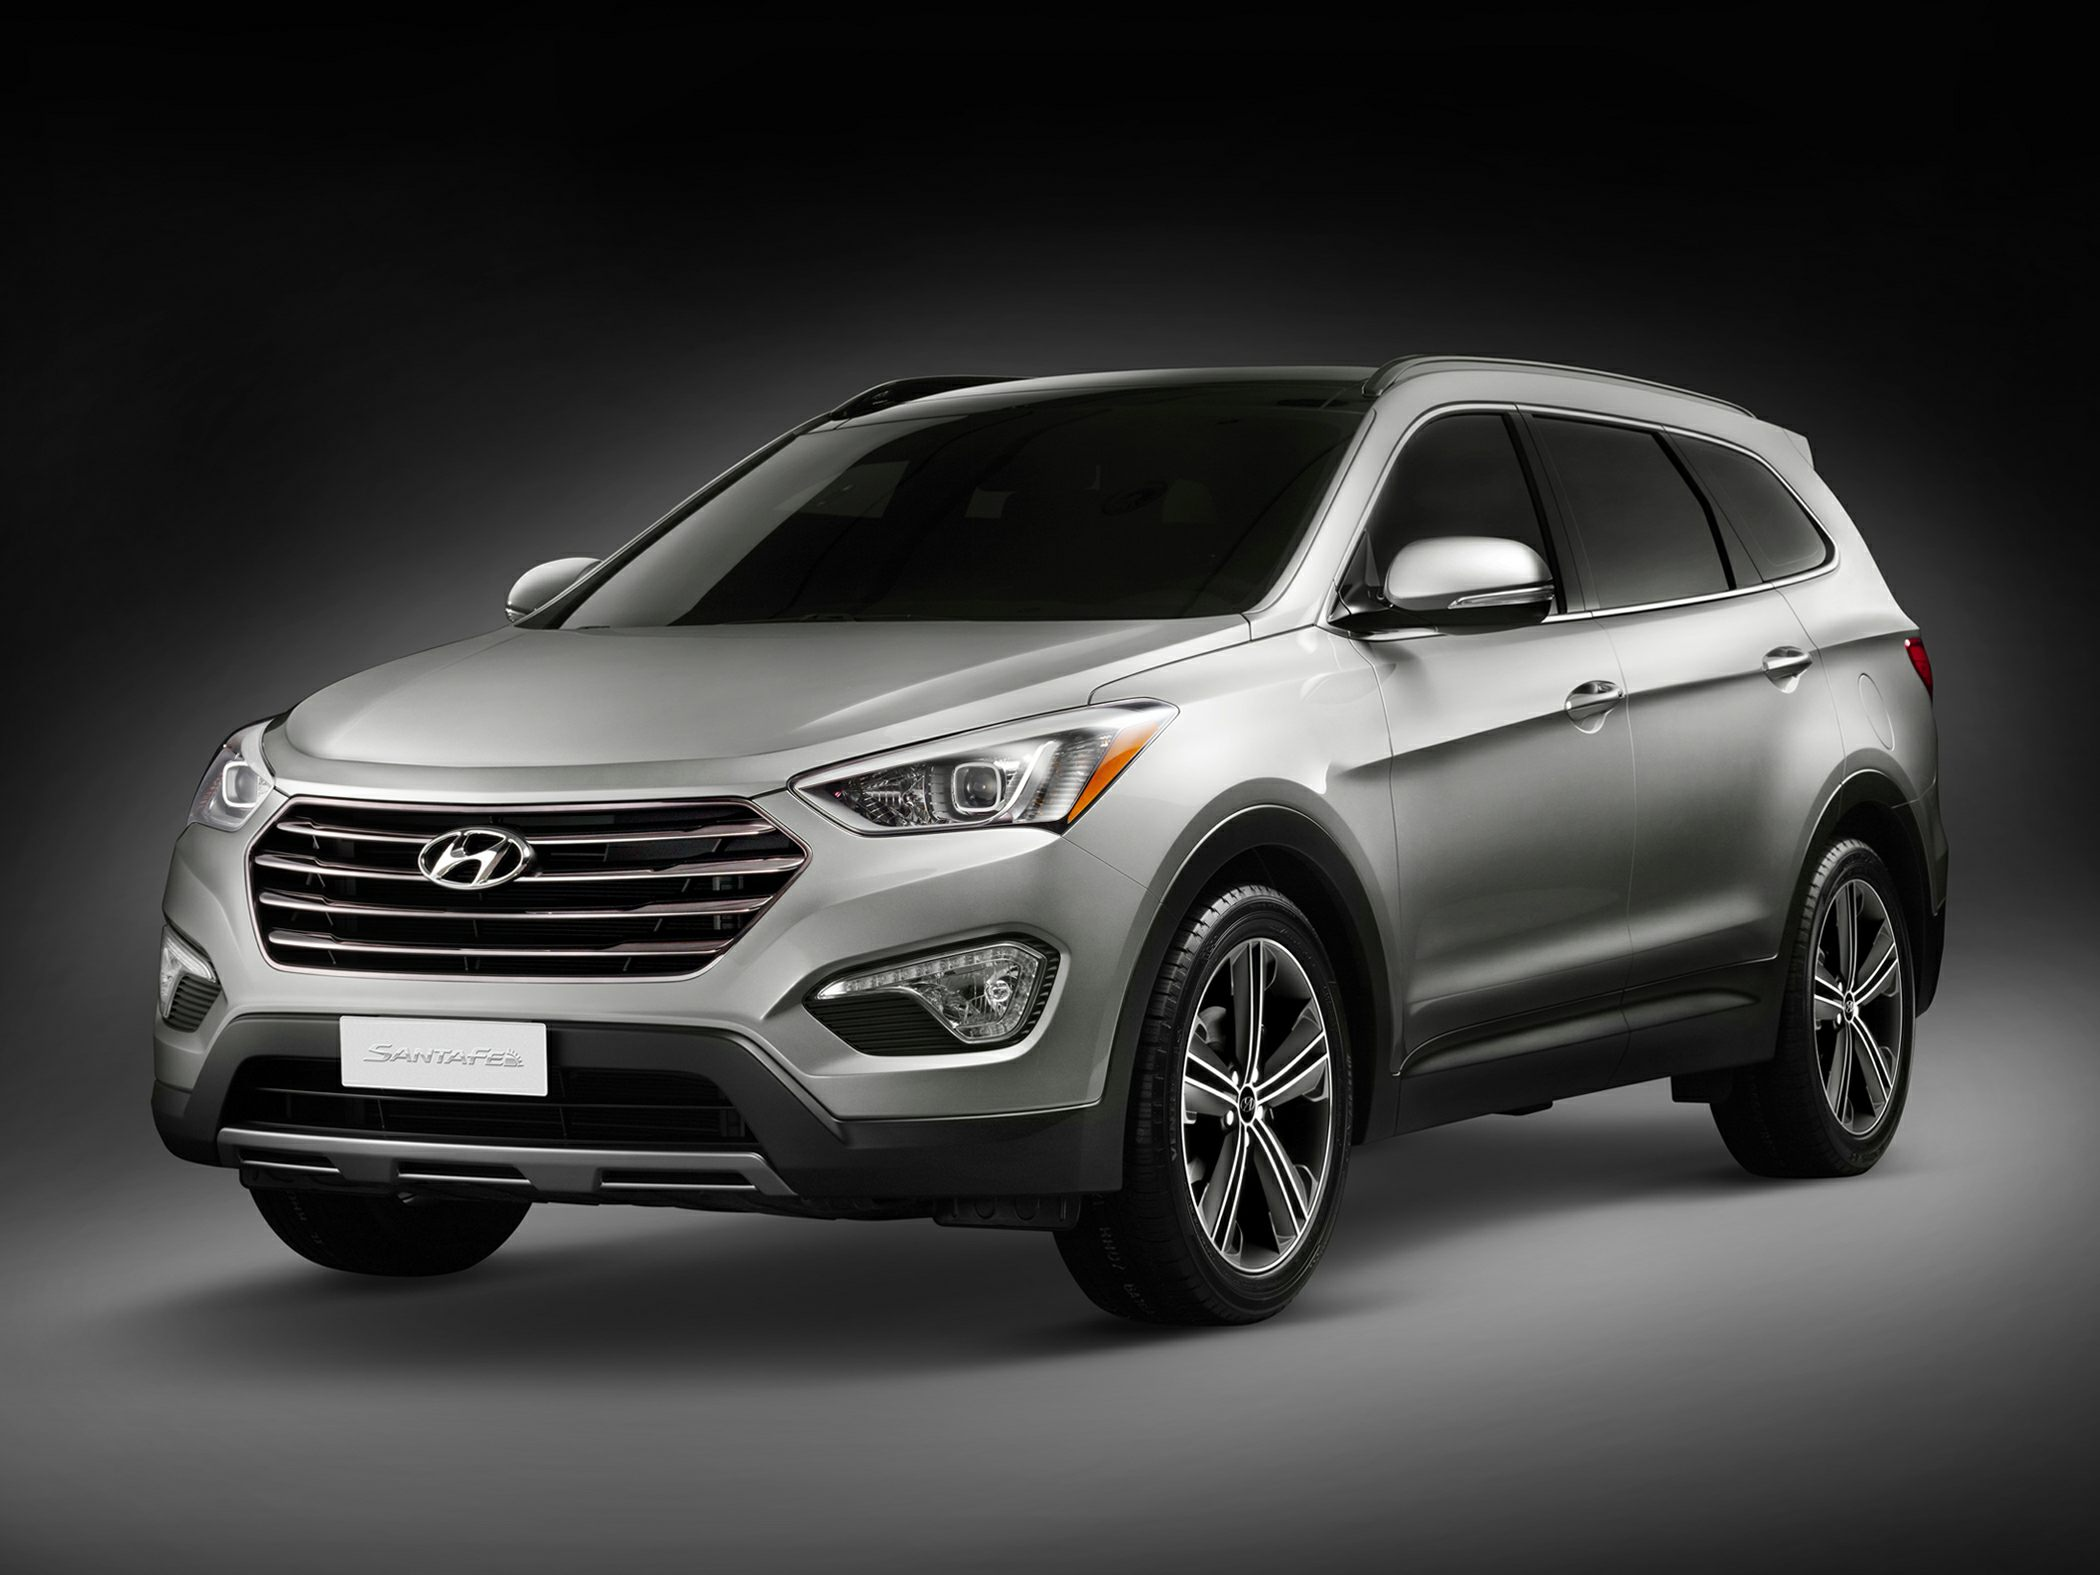 2013 Hyundai Santa Fe GLS Silver 3041 Axle Ratio18 x 75 Aluminum Alloy WheelsCloth Seating S